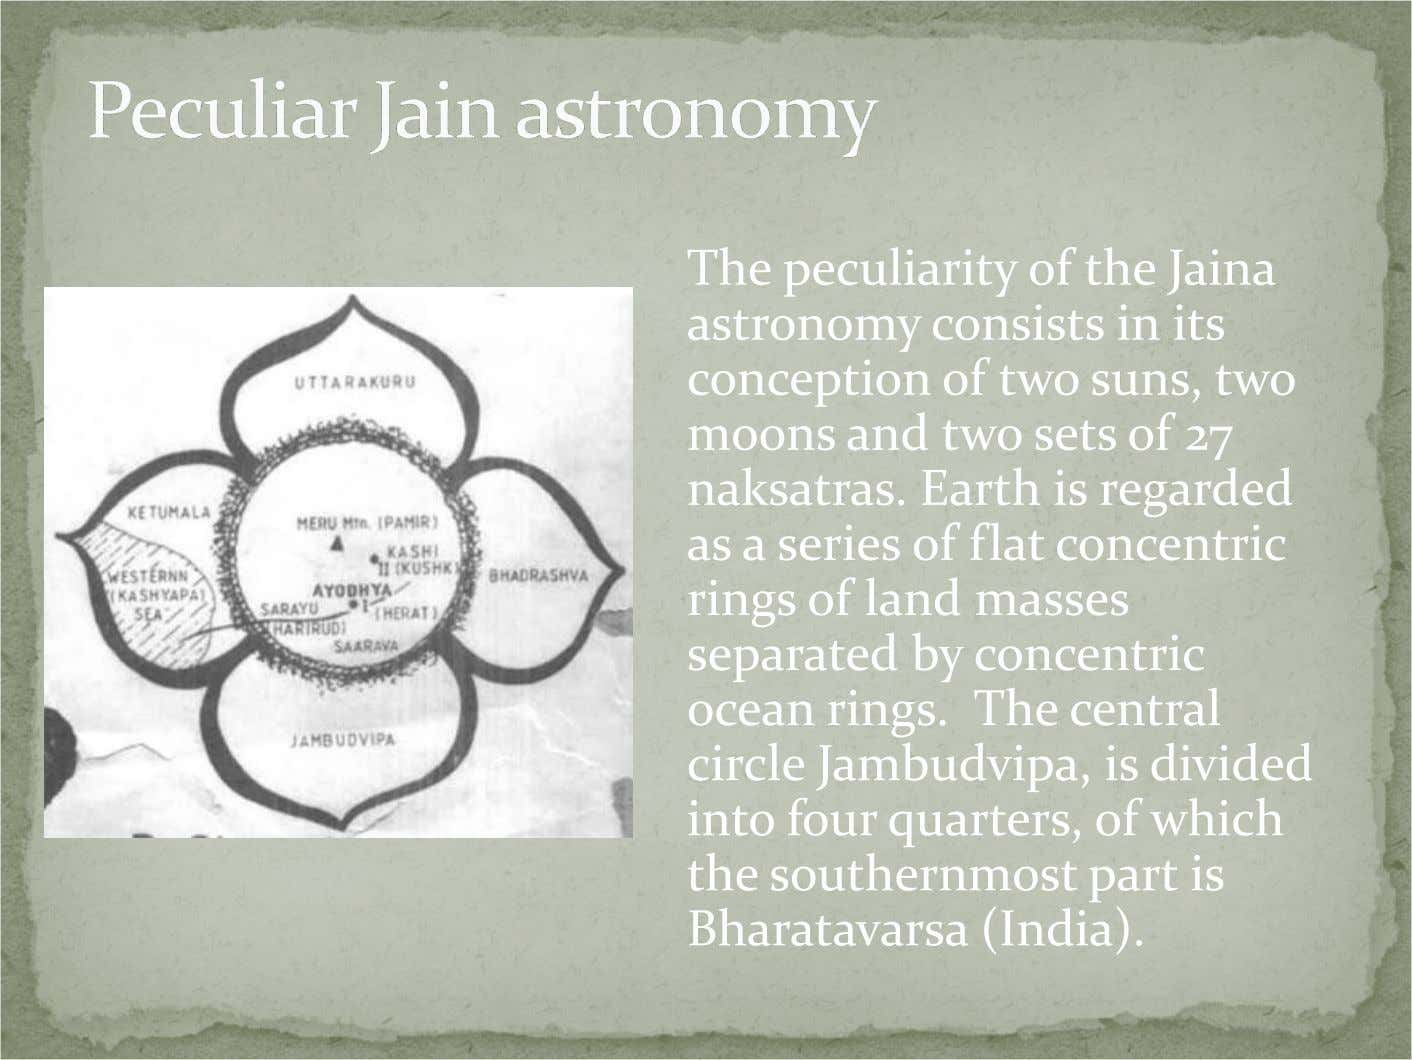 The peculiarity of the Jaina astronomy consists in its conception of two suns, two moons